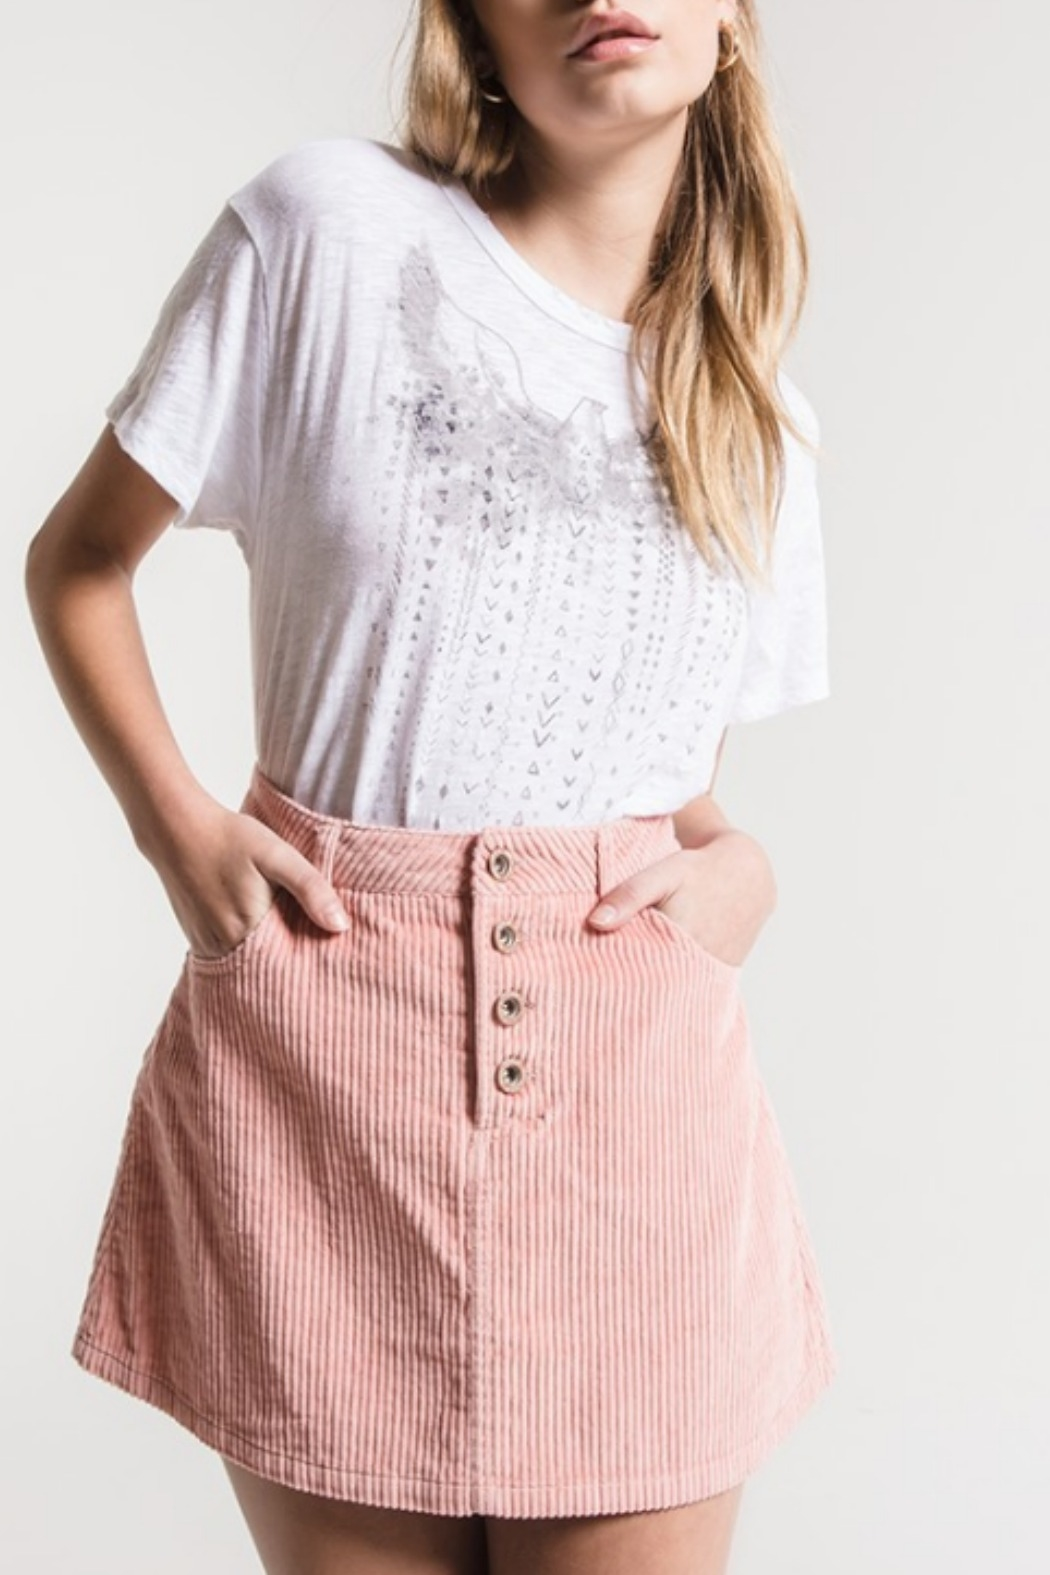 98a365d320c White Crow Corduroy Skirt from Austin by Starrs On Mercer — Shoptiques